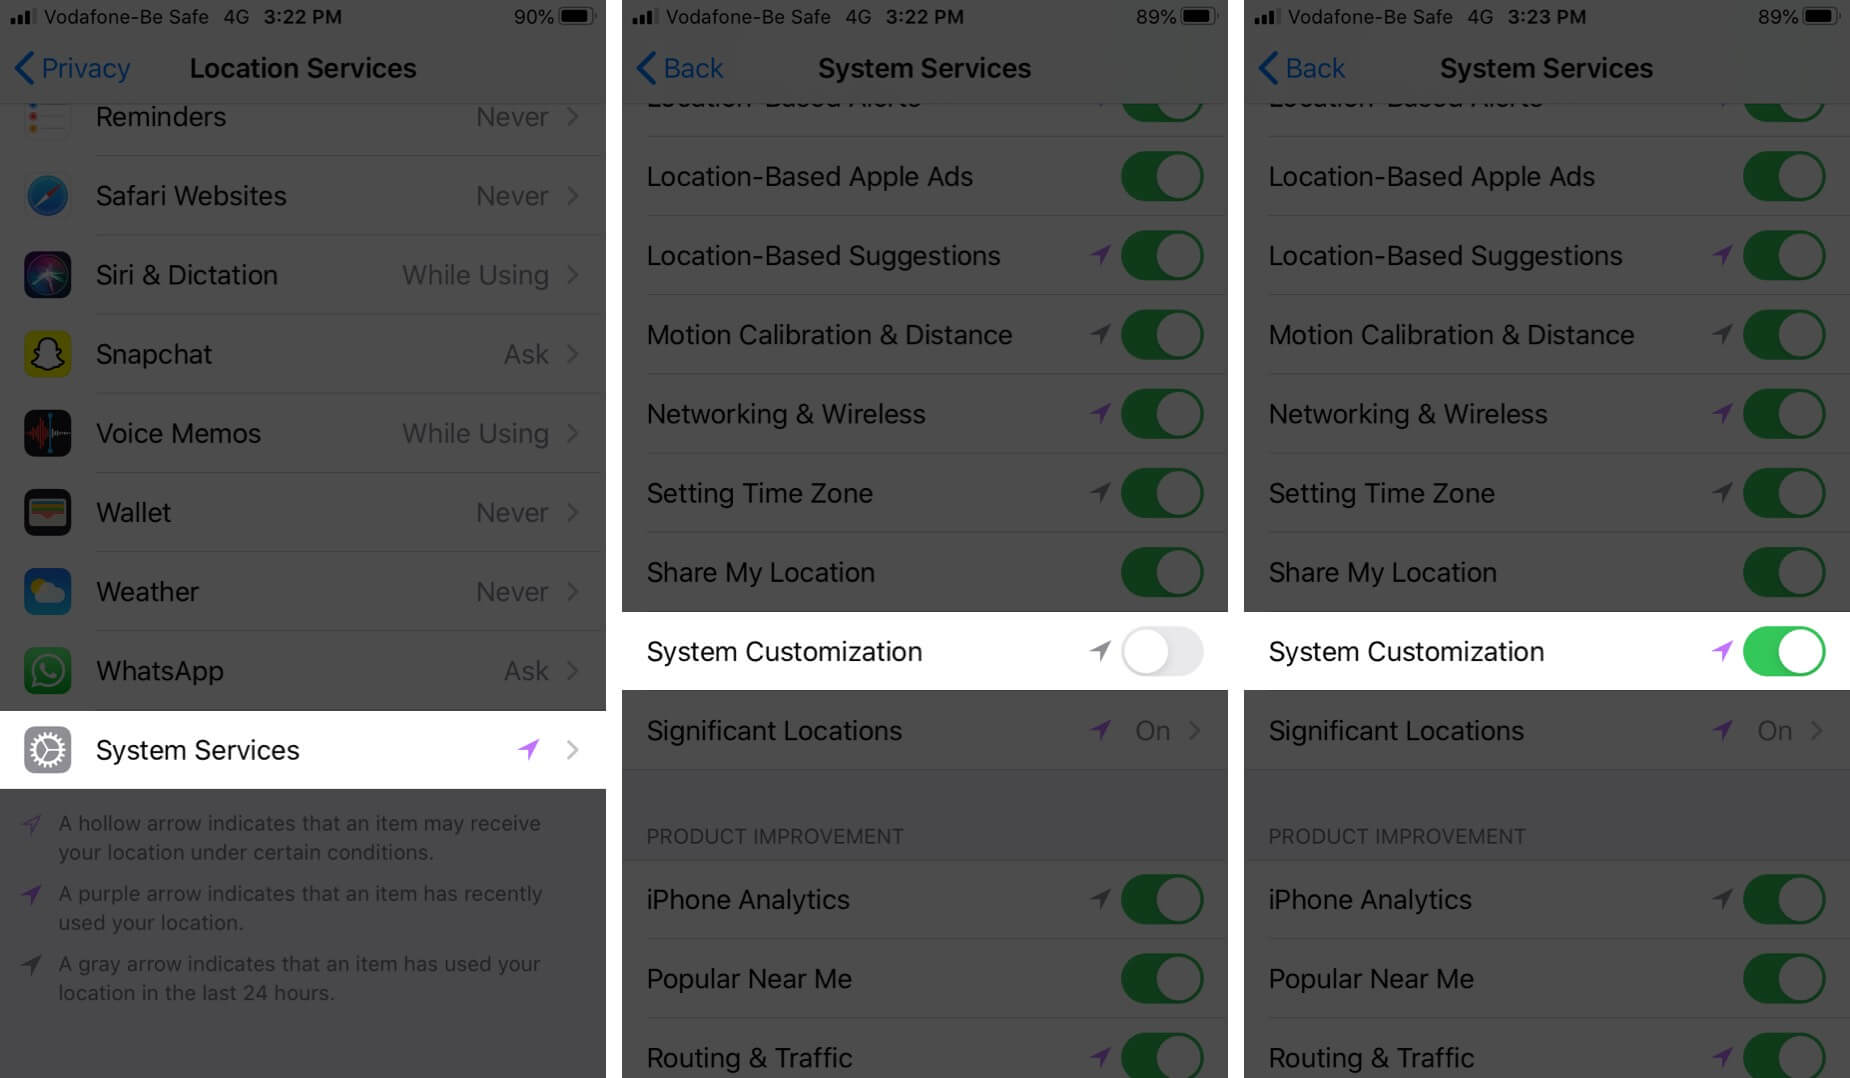 Enable System Customization on iPhone